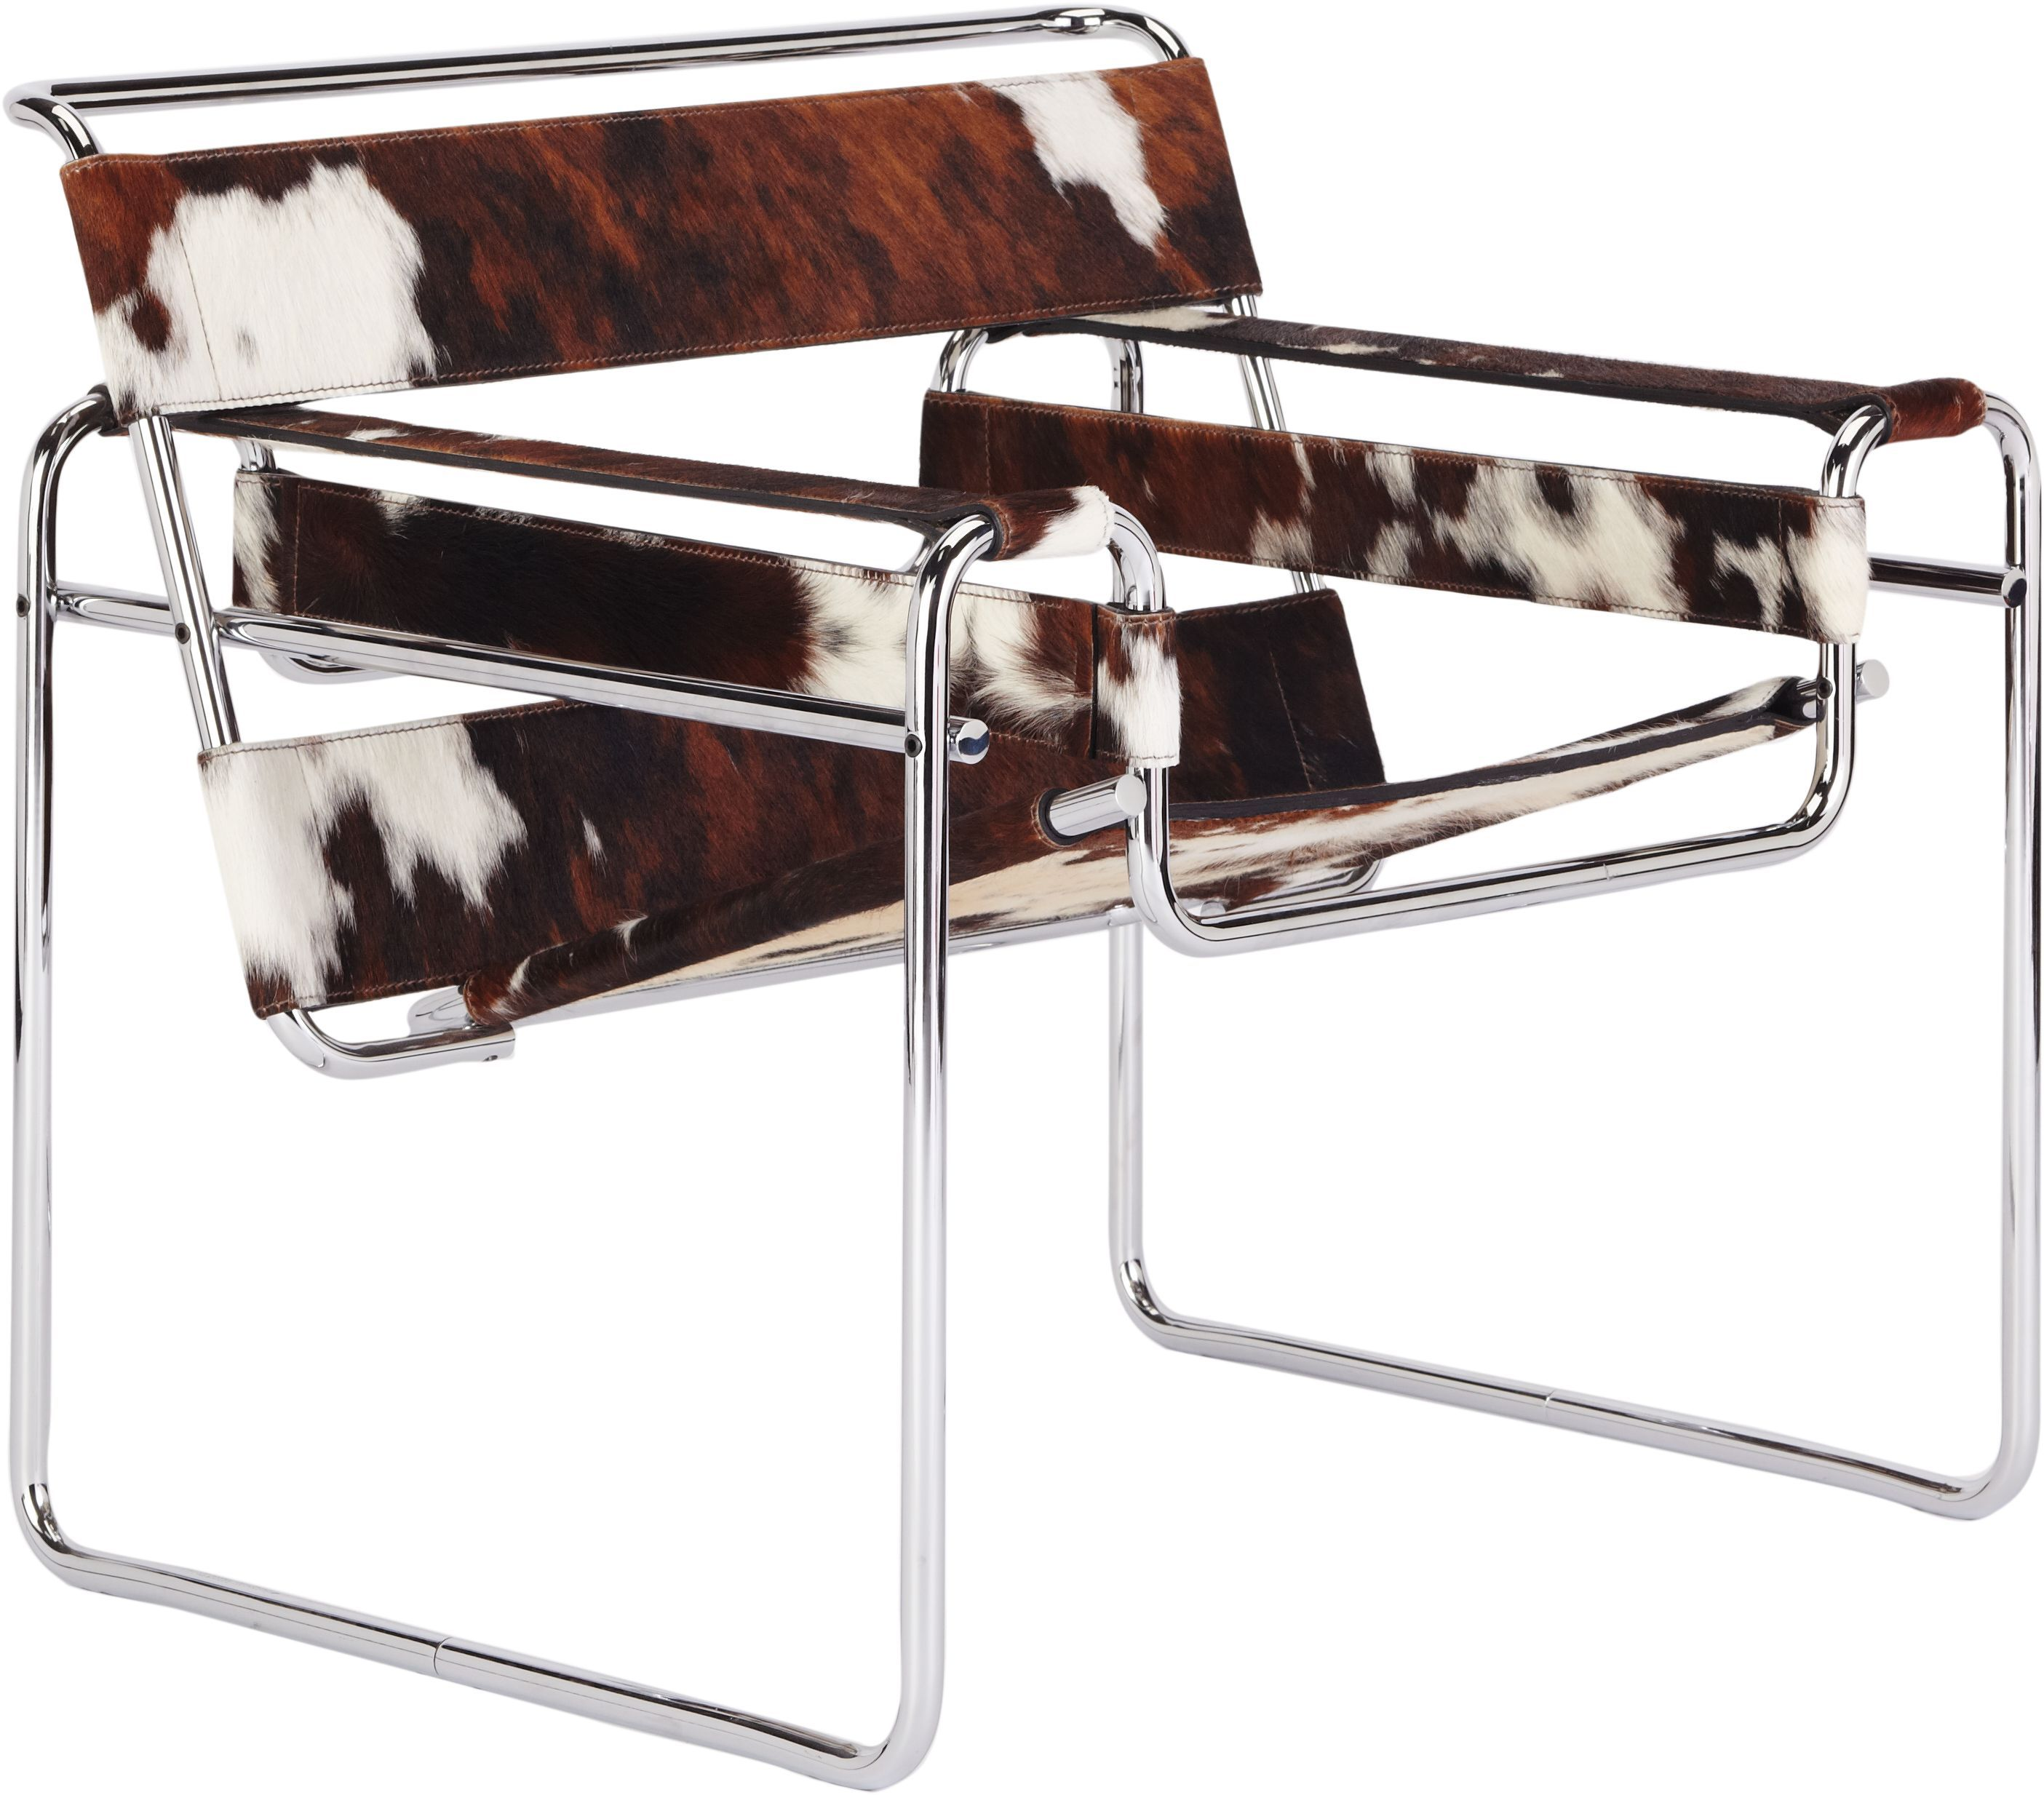 In spirit and stature, Marcel Breuer's Wassily Chair (1925